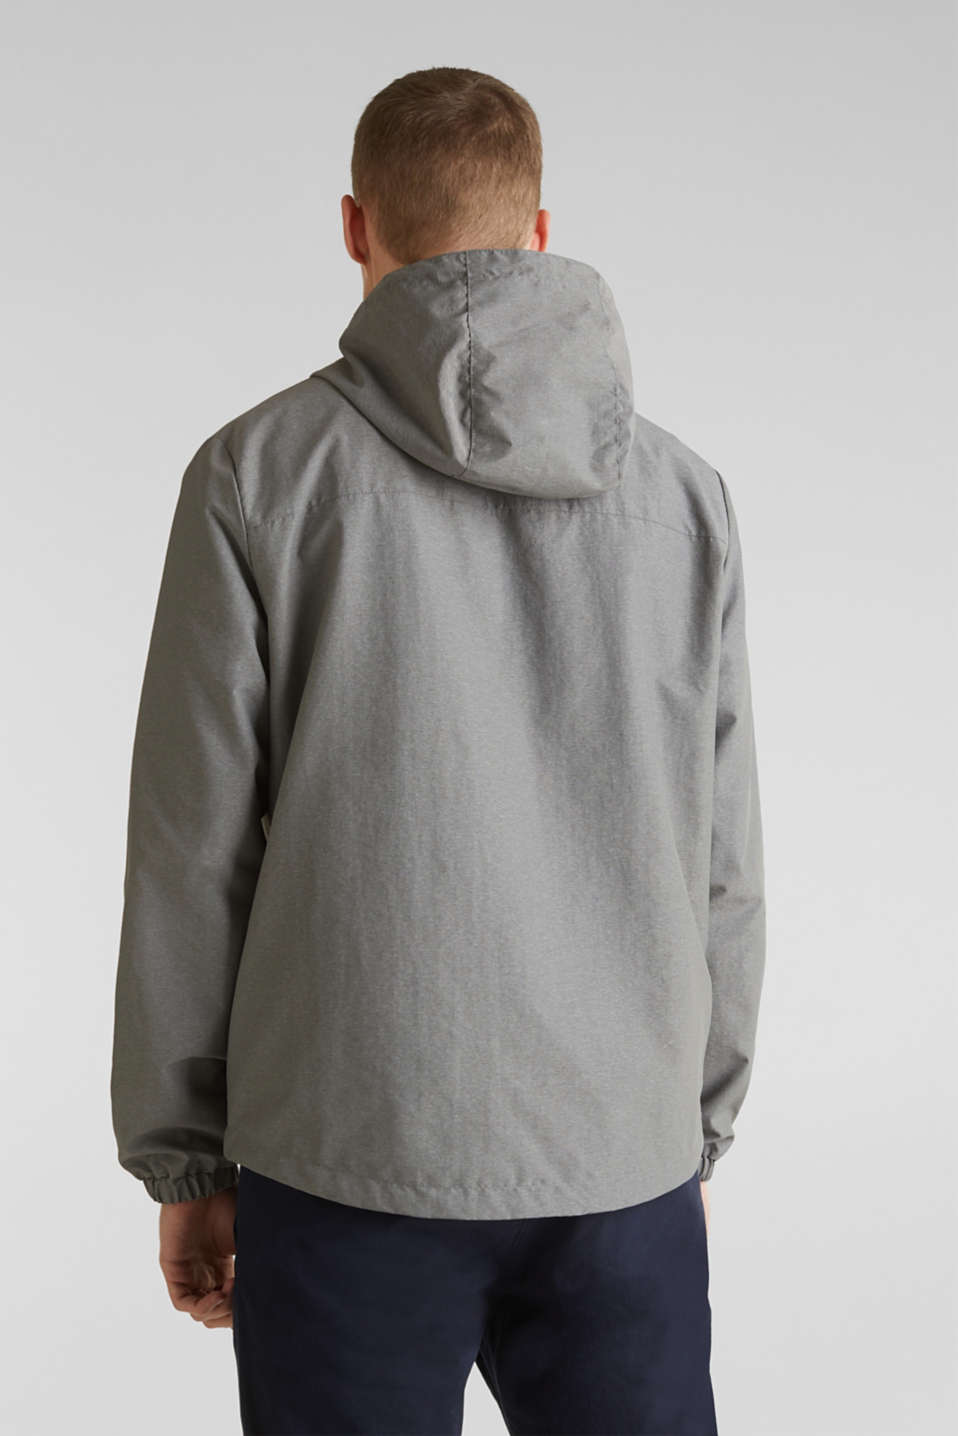 Rain jacket with hood, MEDIUM GREY 5, detail image number 3